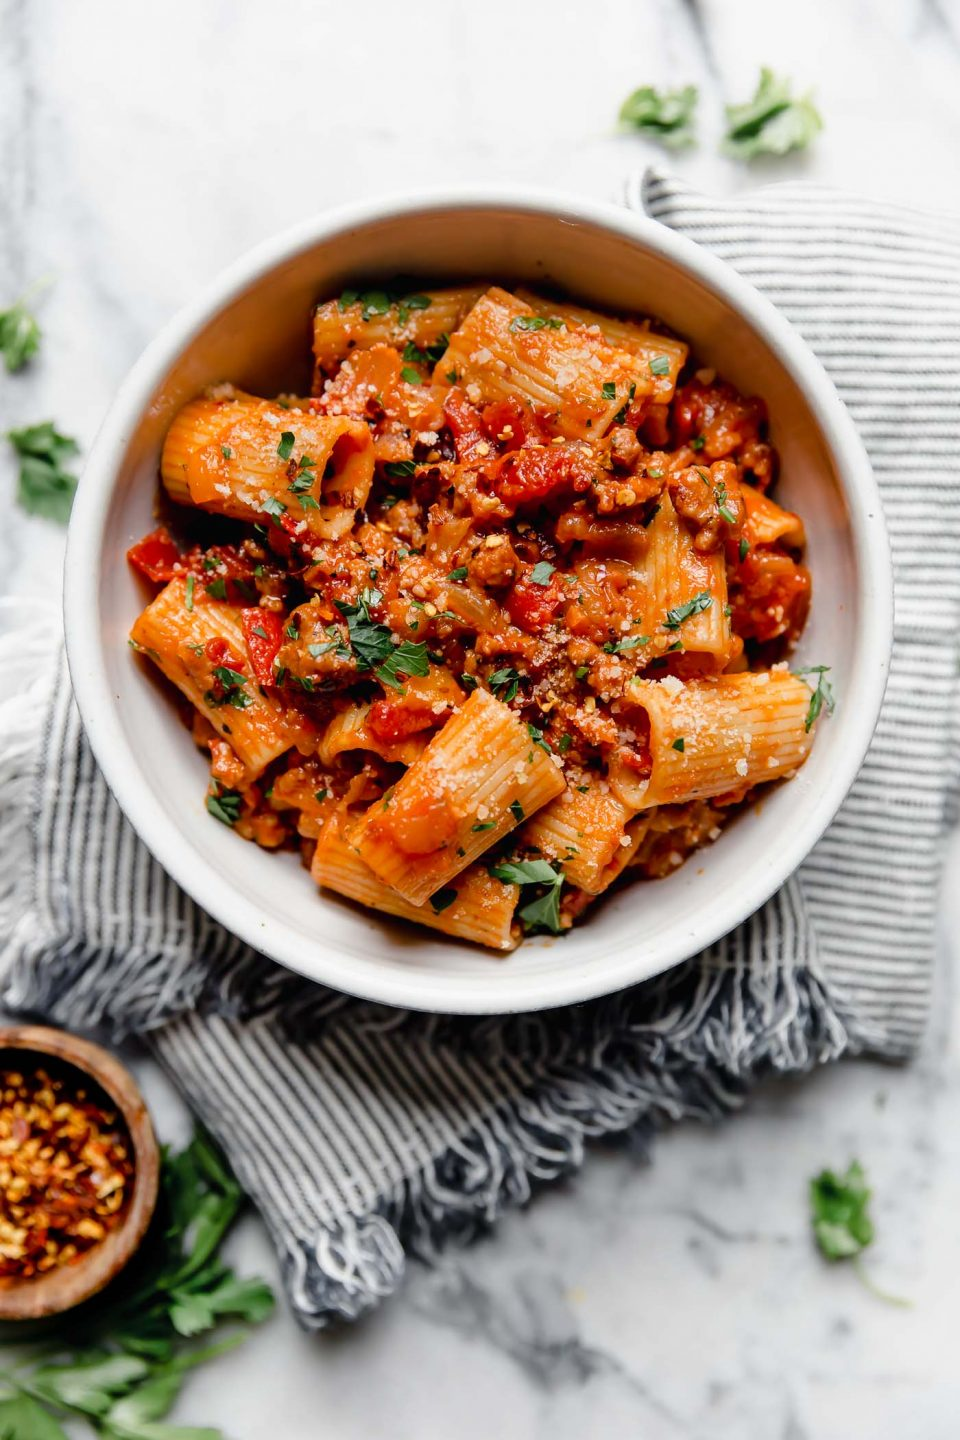 Italian Sausage & peppers pasta served in a white bowl sitting on a striped linen napkin atop a white marble surface surrounded by fresh parsley leaves, & a small wooden bowl filled with crushed red pepper flakes.